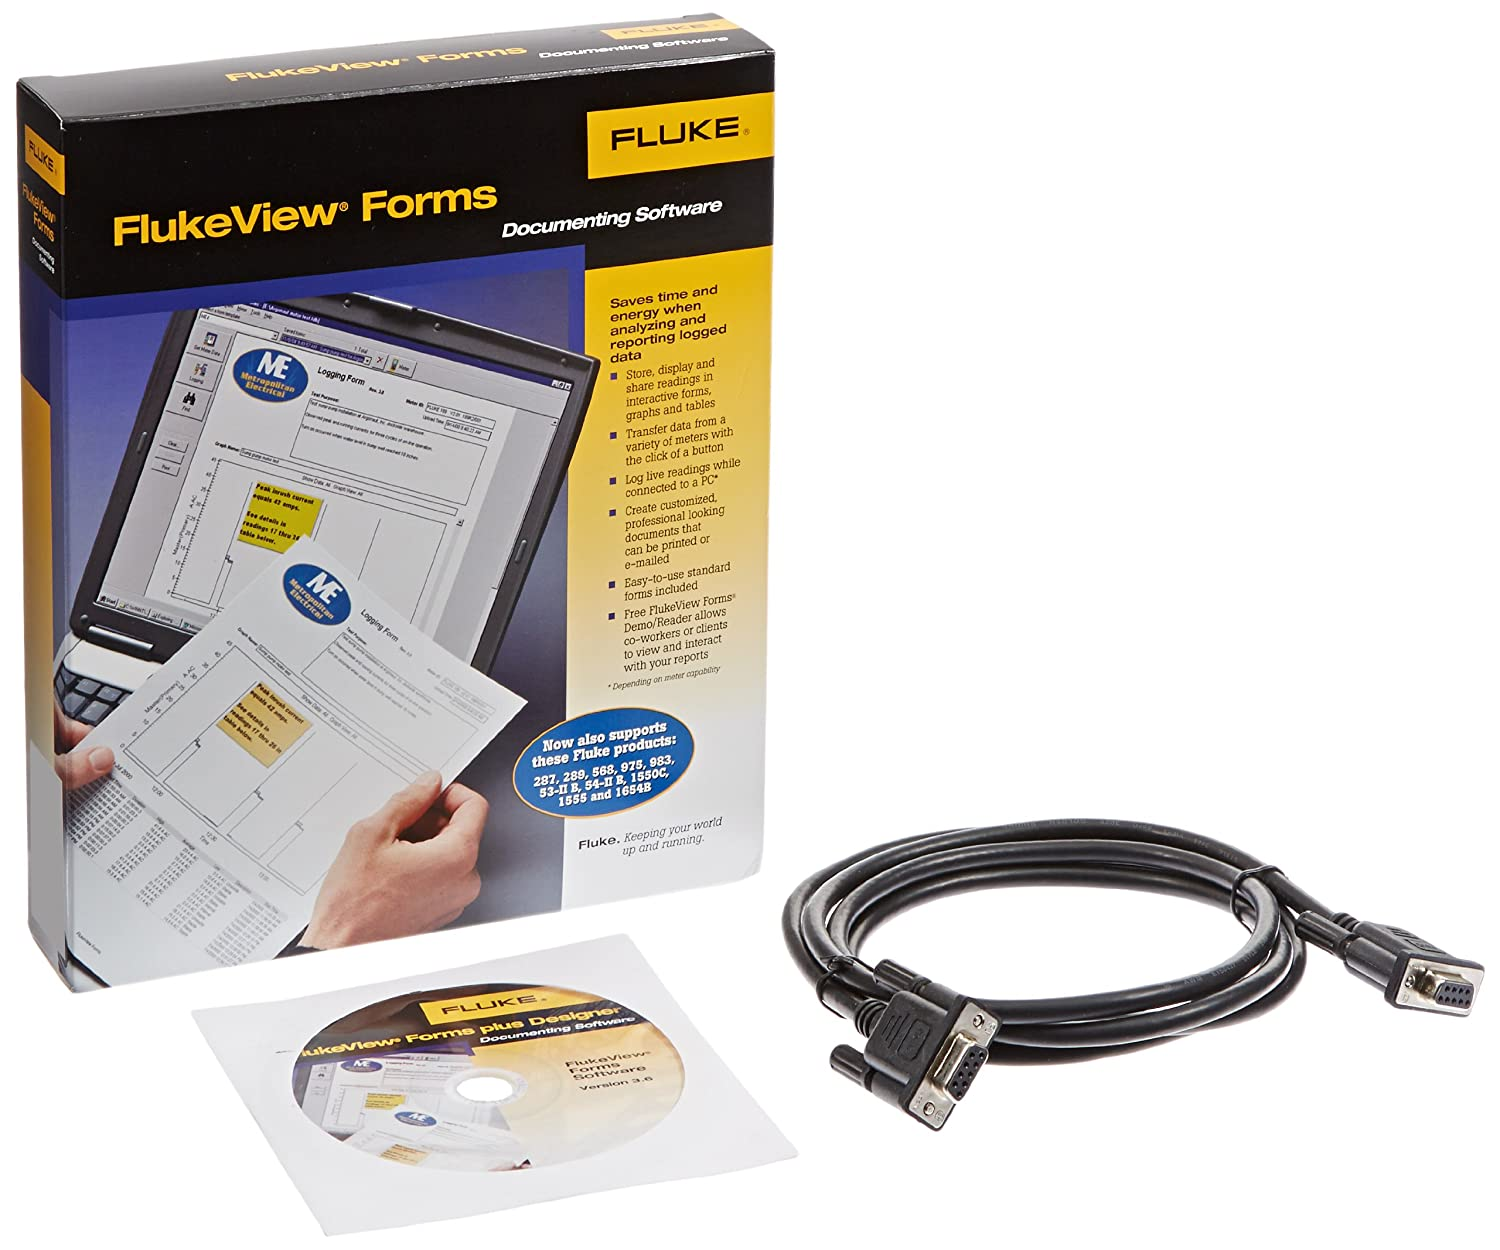 180 Series Fluke FVF-Basic View Forms Basic Software with Cable for 280 Series 789 1653B and 1550B